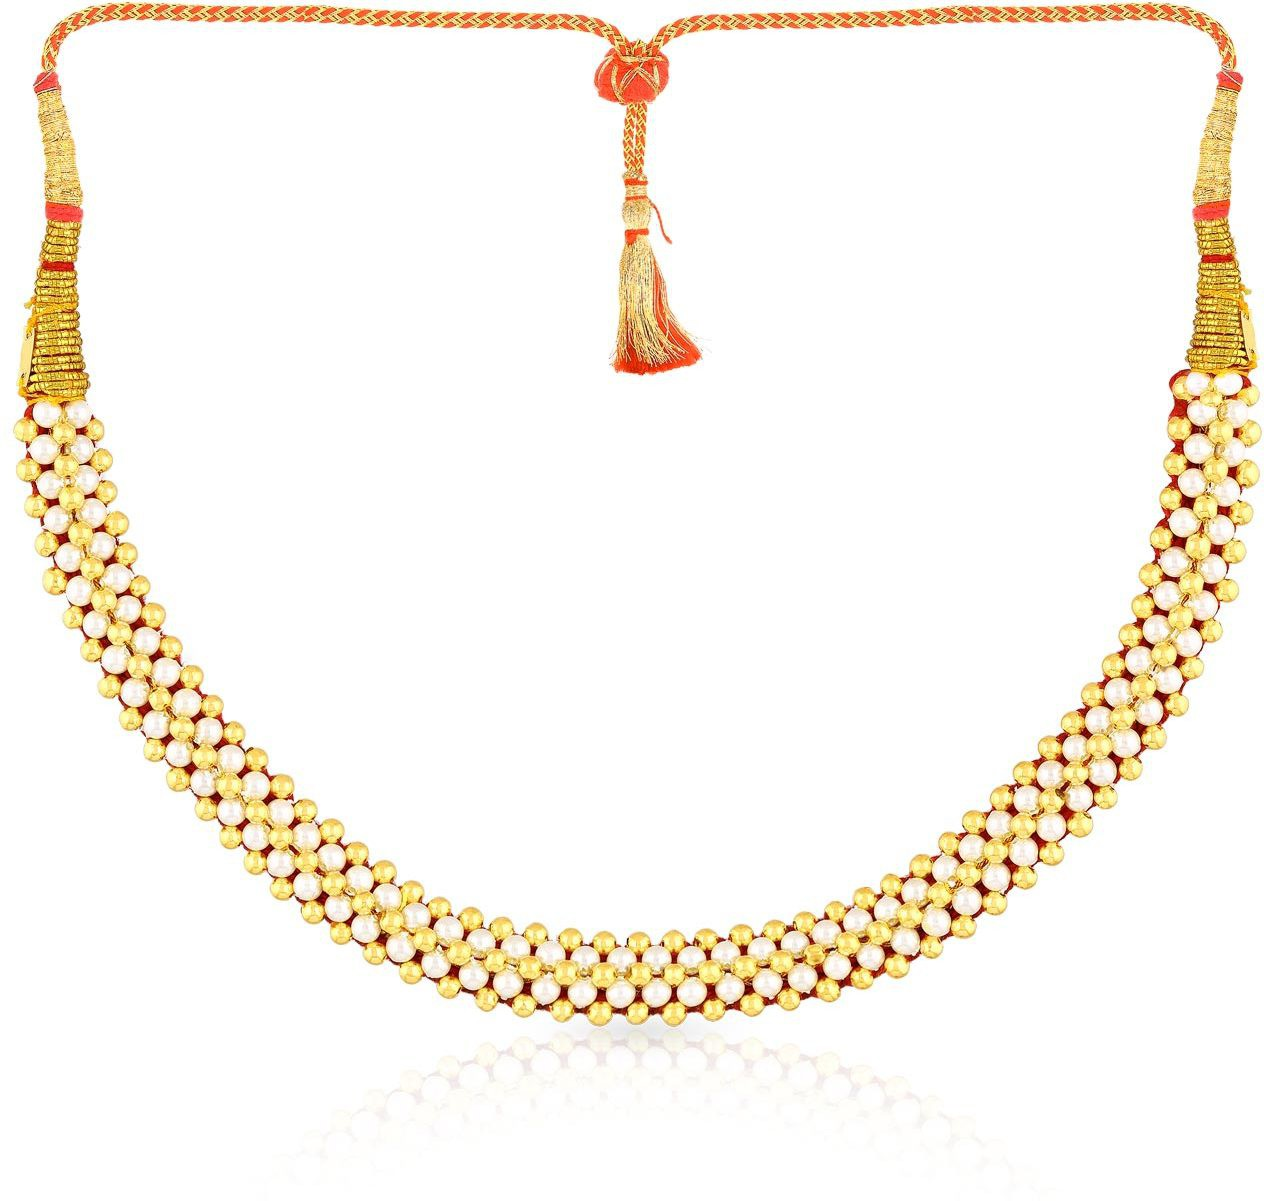 Deals - Kalol - Malabar <br> Gold & Diamond Jewellery<br> Category - jewellery<br> Business - Flipkart.com